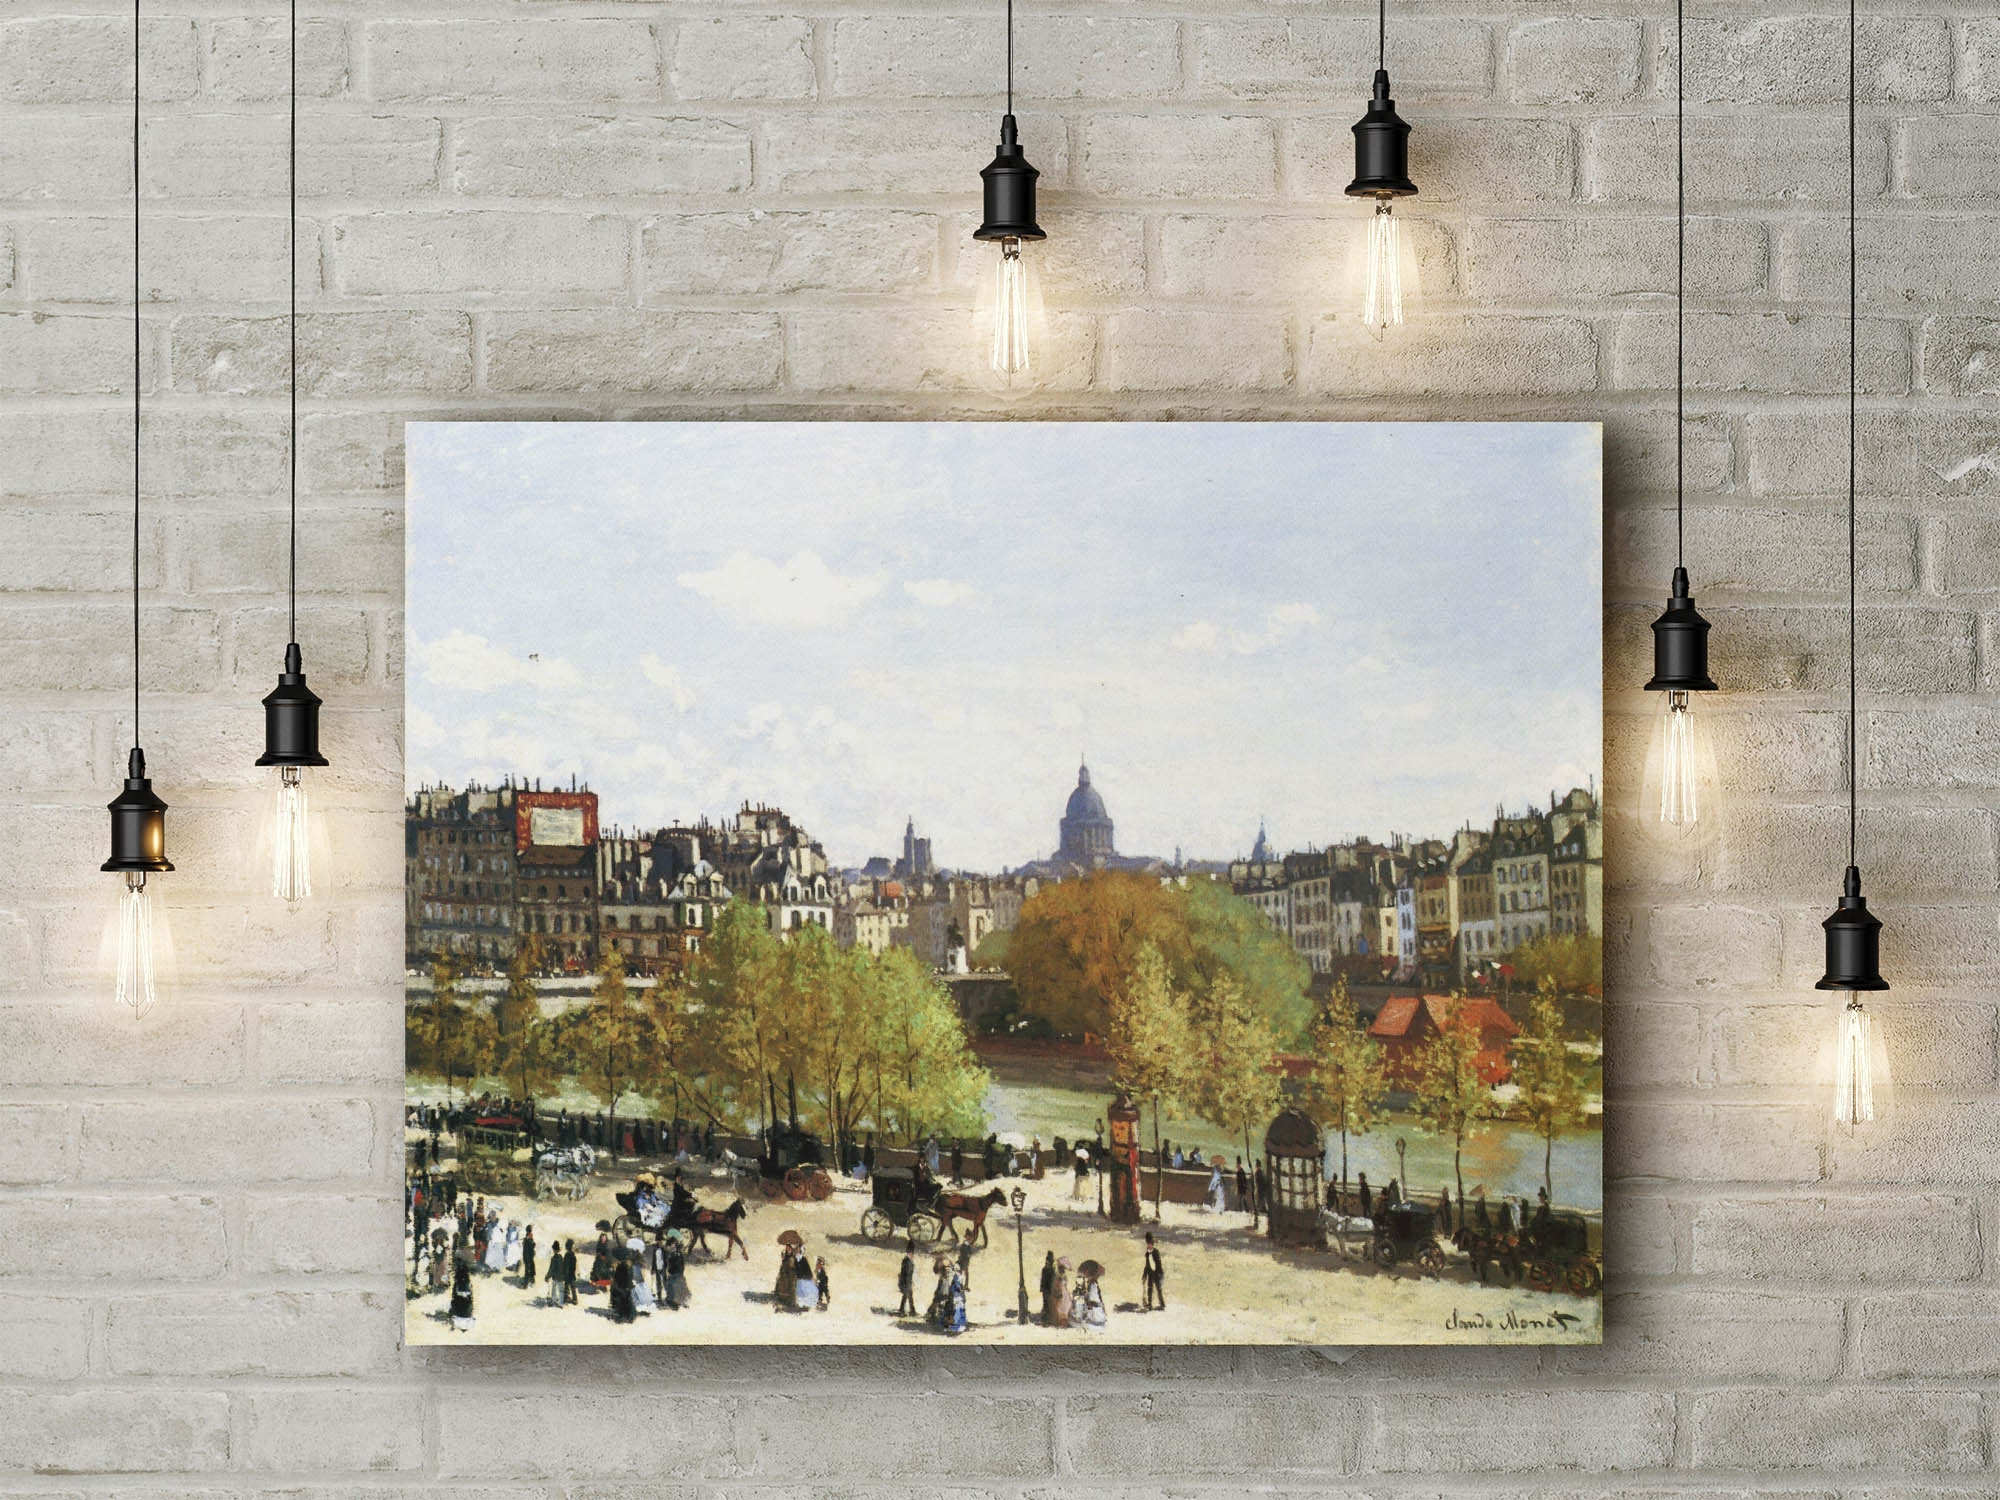 Nymphe/_as Canvas Print Picture Wall Art Large 30x20 Inches Claude Monet Water Lilliers